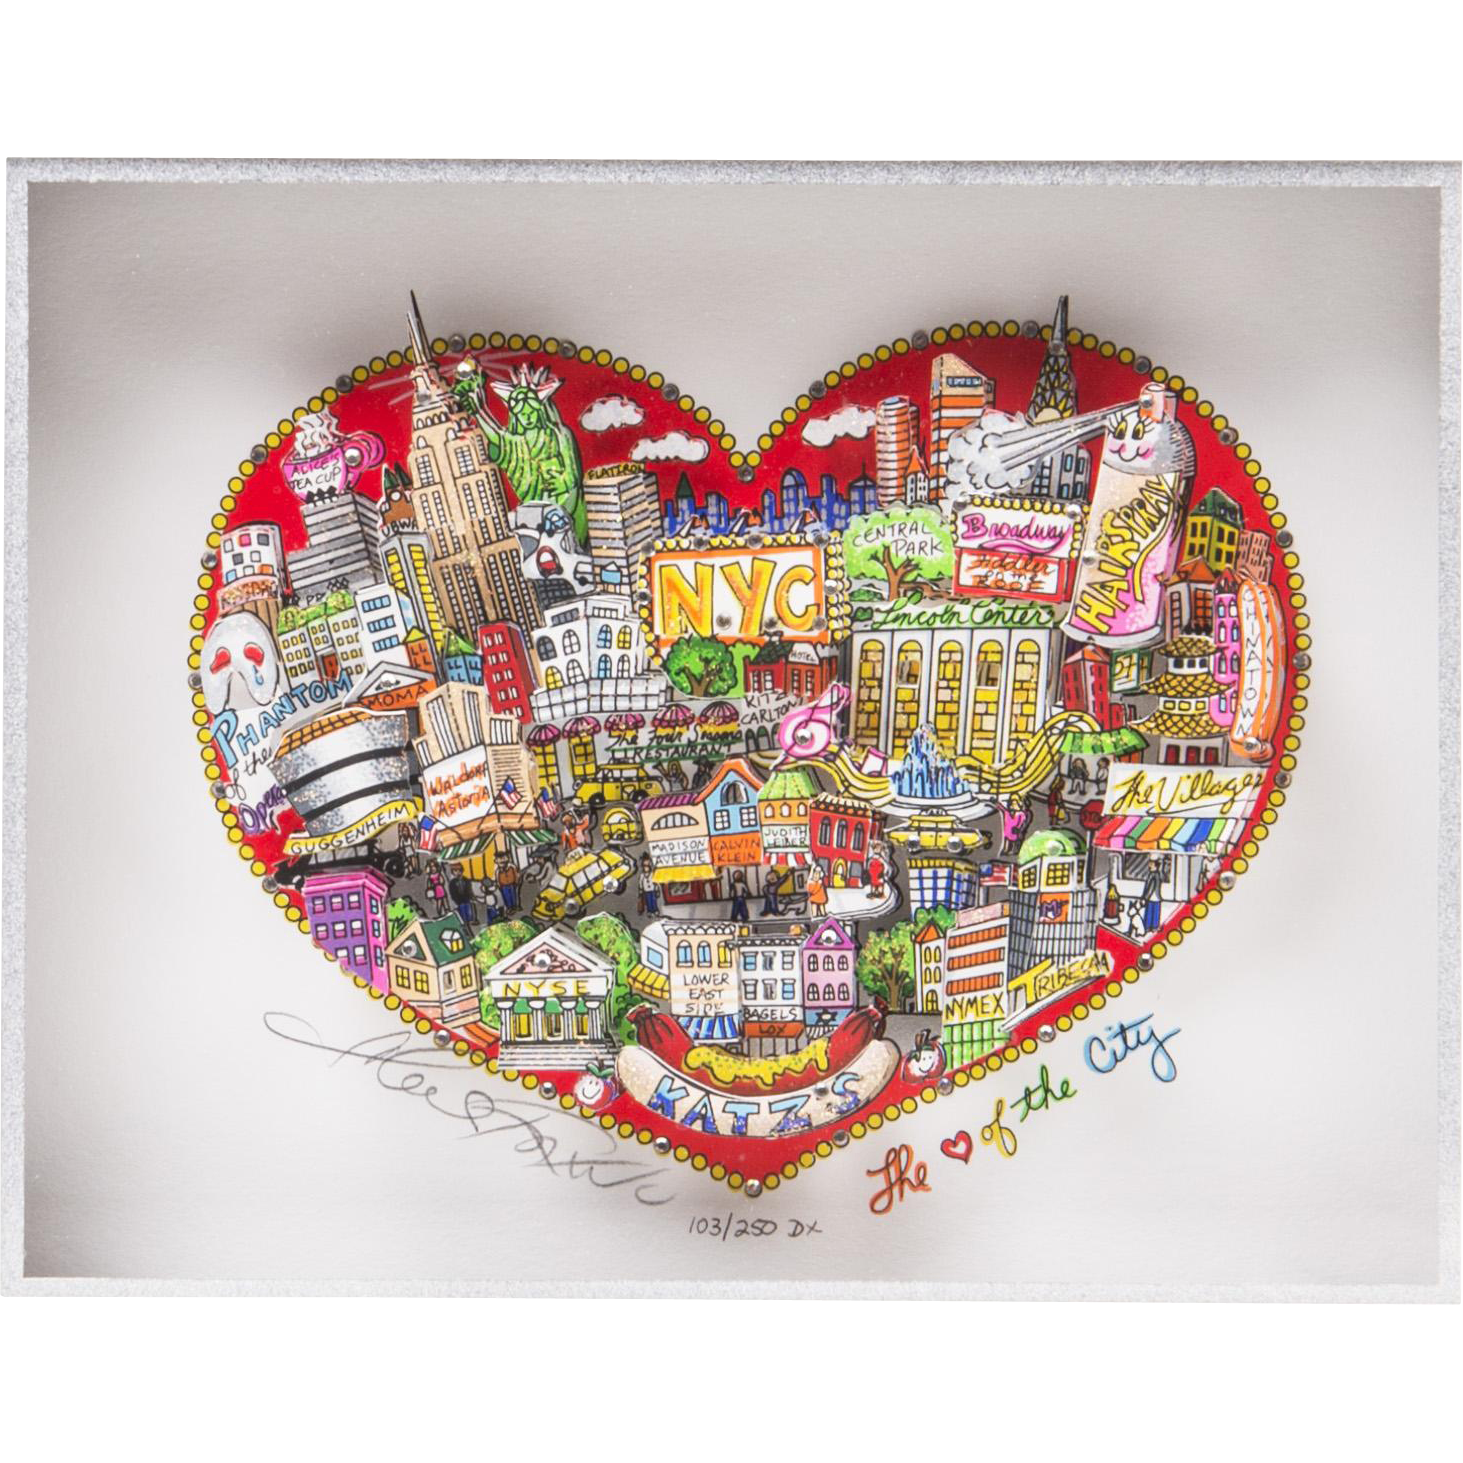 Original Pop Art Serigraph By Charles Fazzino, My Love Of The City